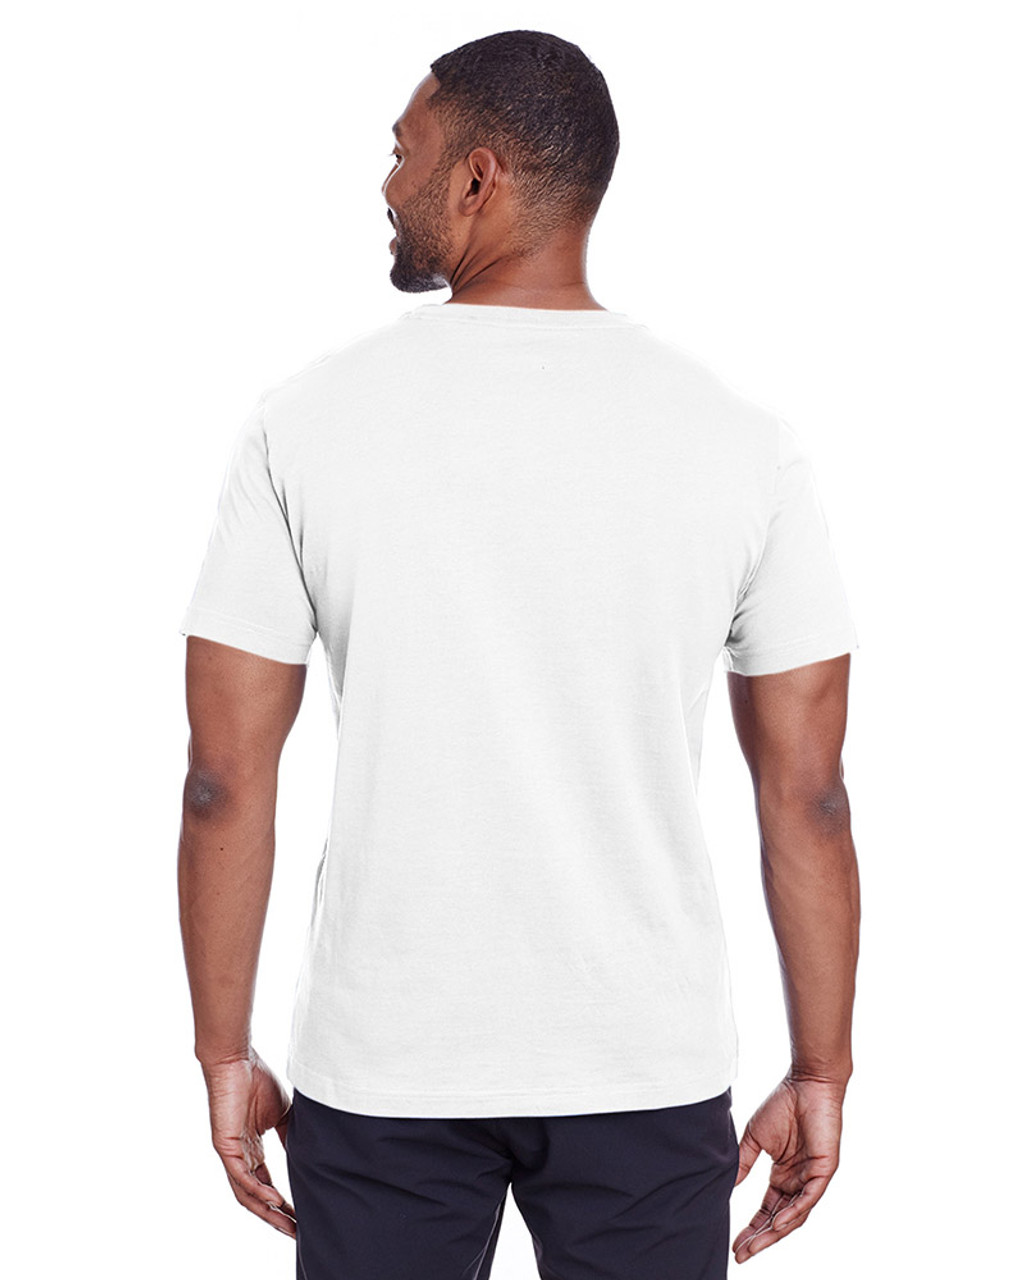 Puma White/Quiet Shade - back, 582006 Puma Sport Essential Adult Logo T-Shirt | BlankClothing